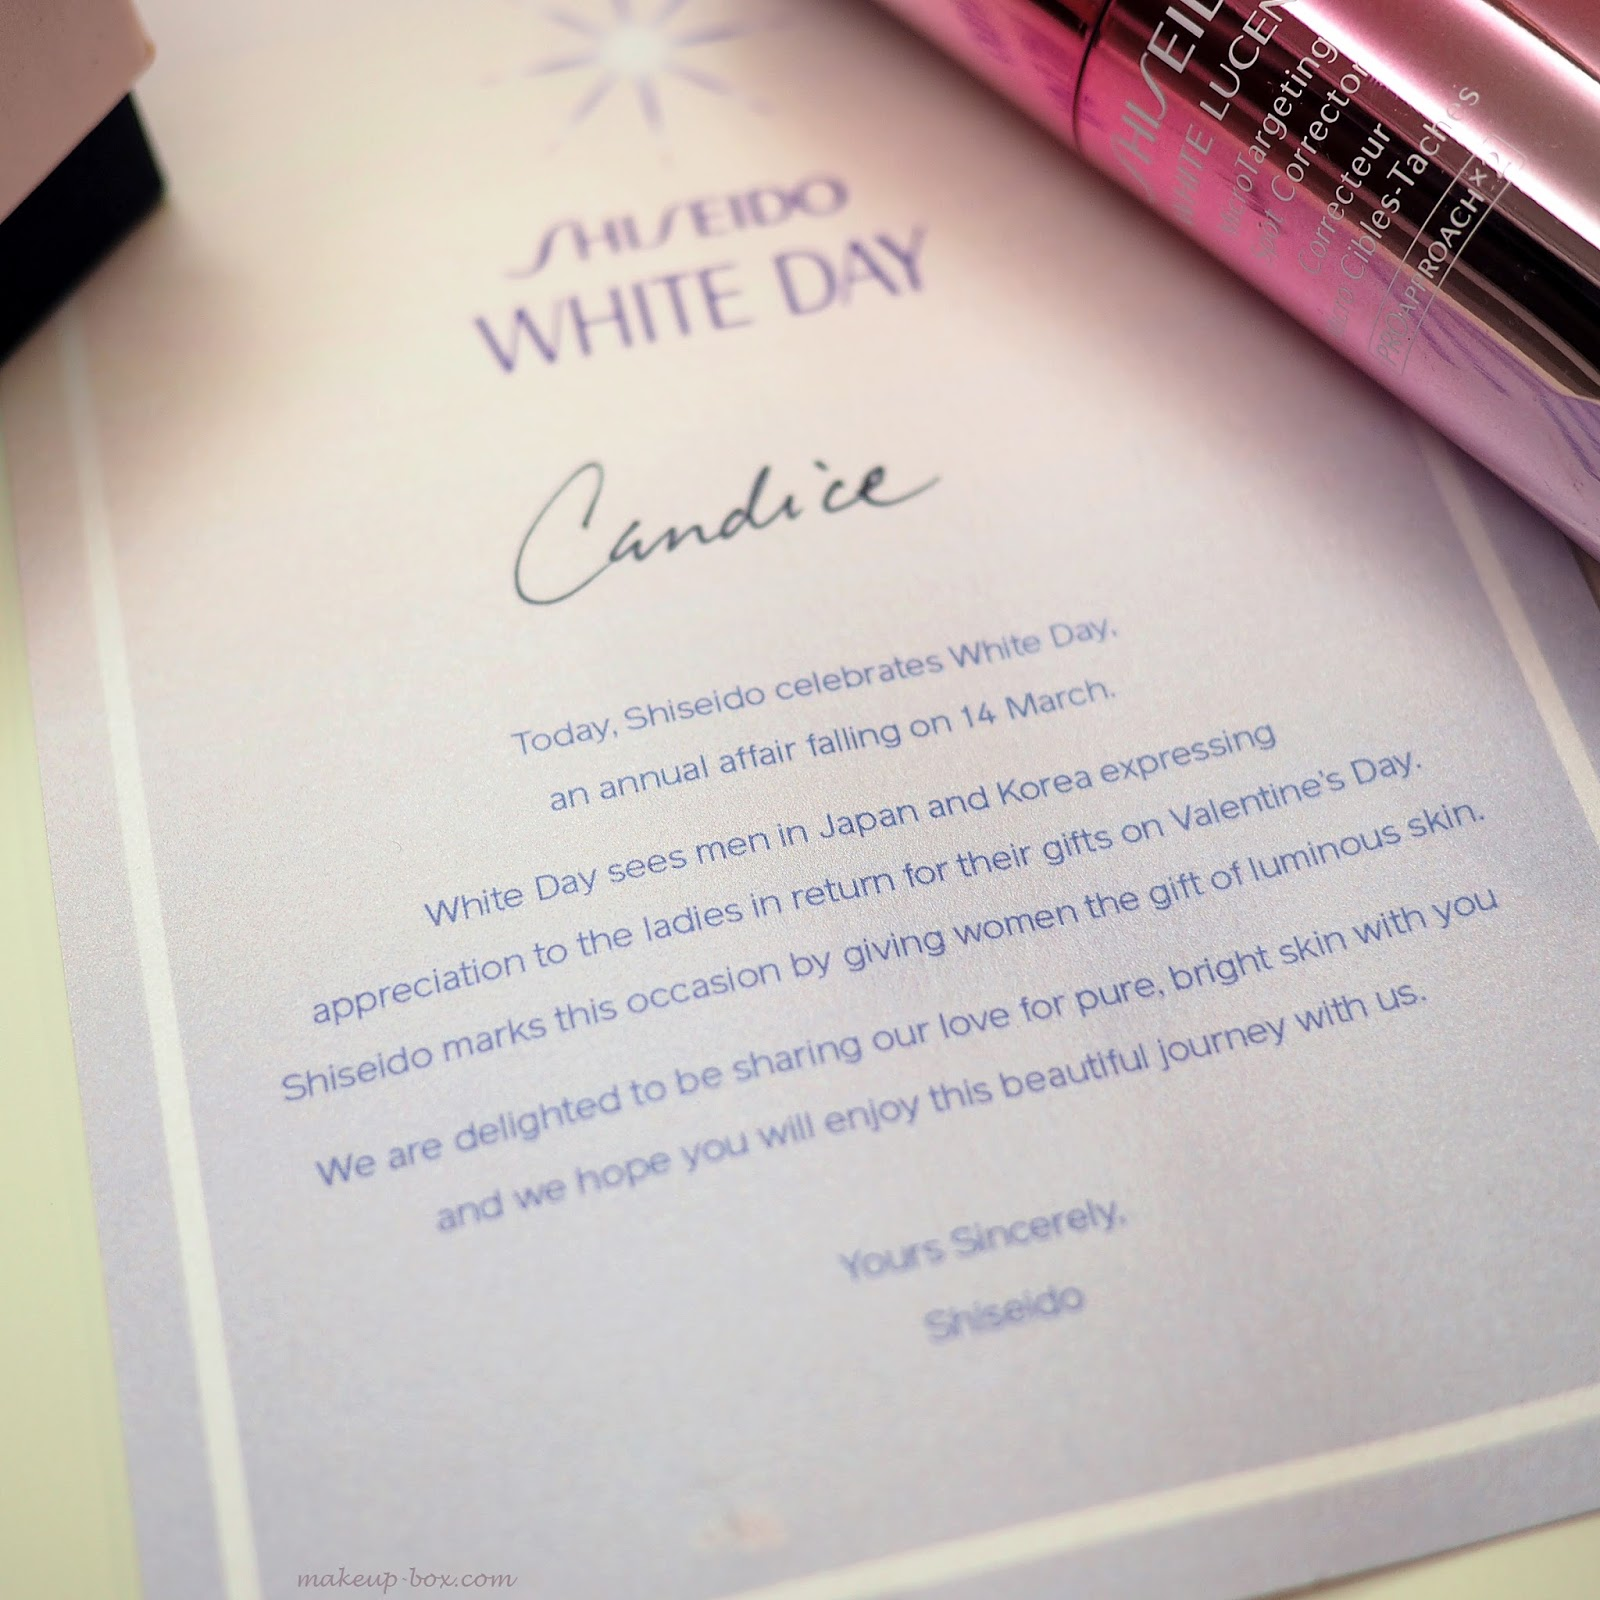 The Makeup Box Happy White Day